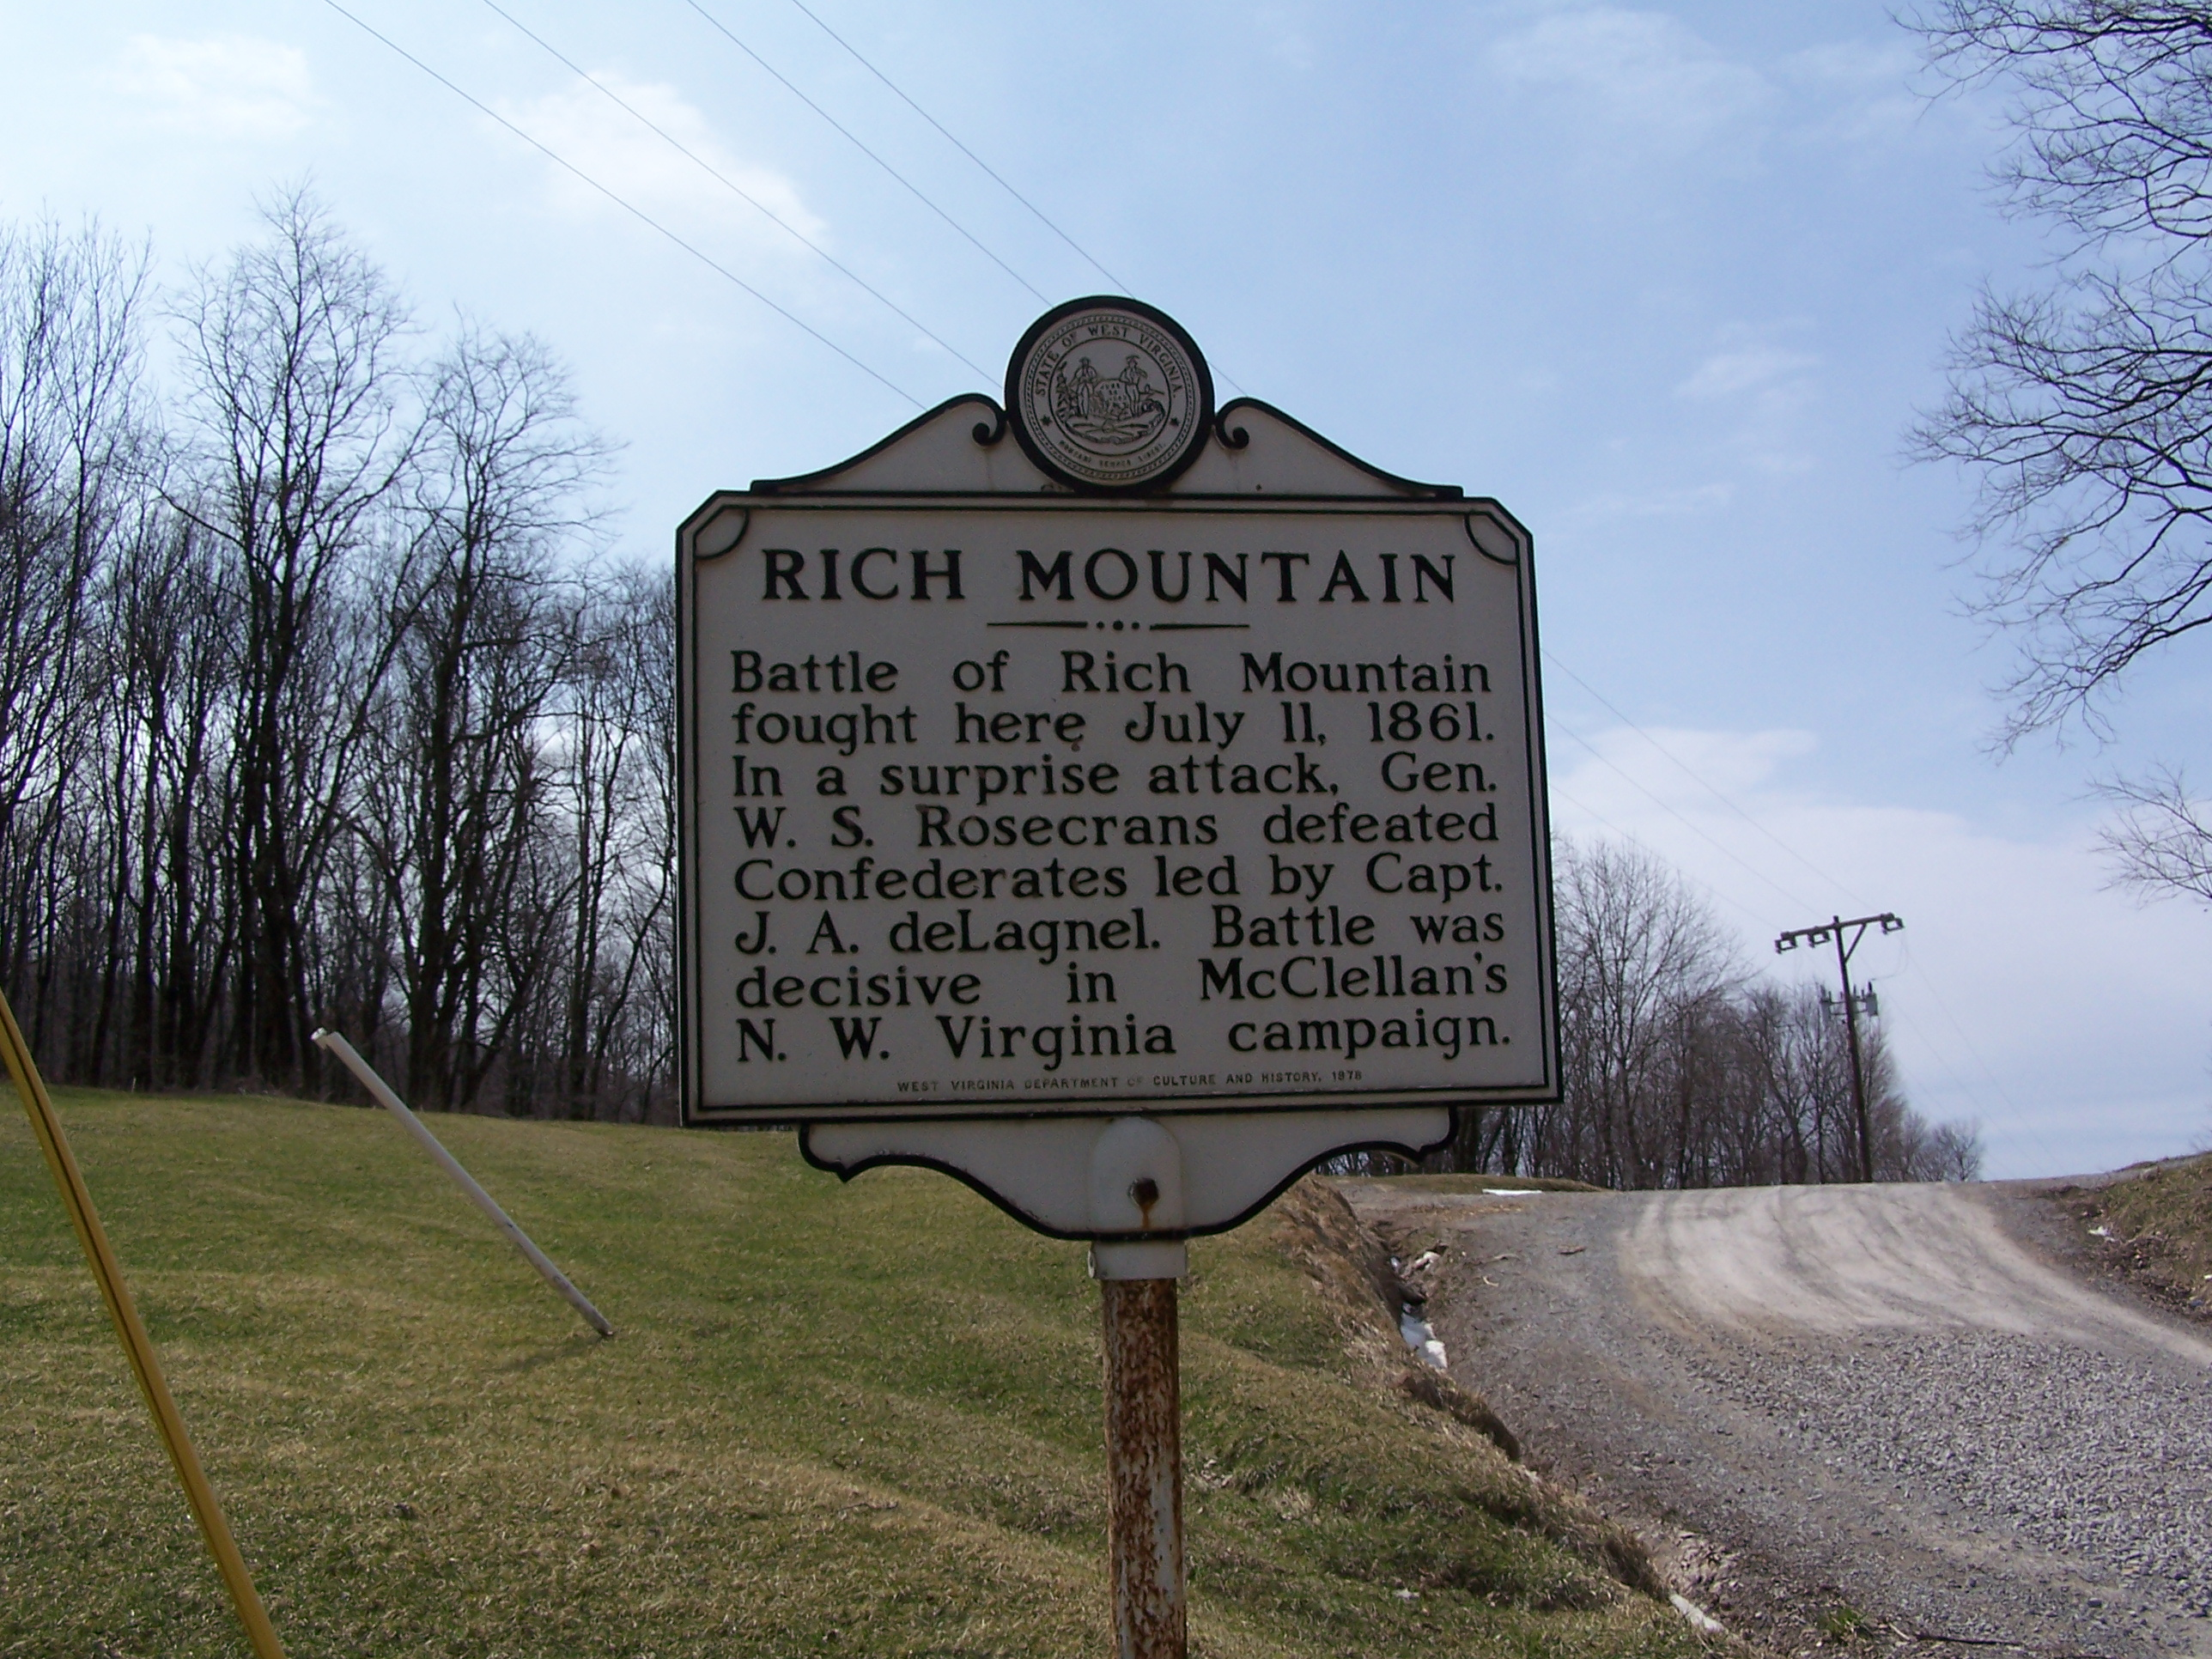 Historical Marker for the Battle of Rich Mountain